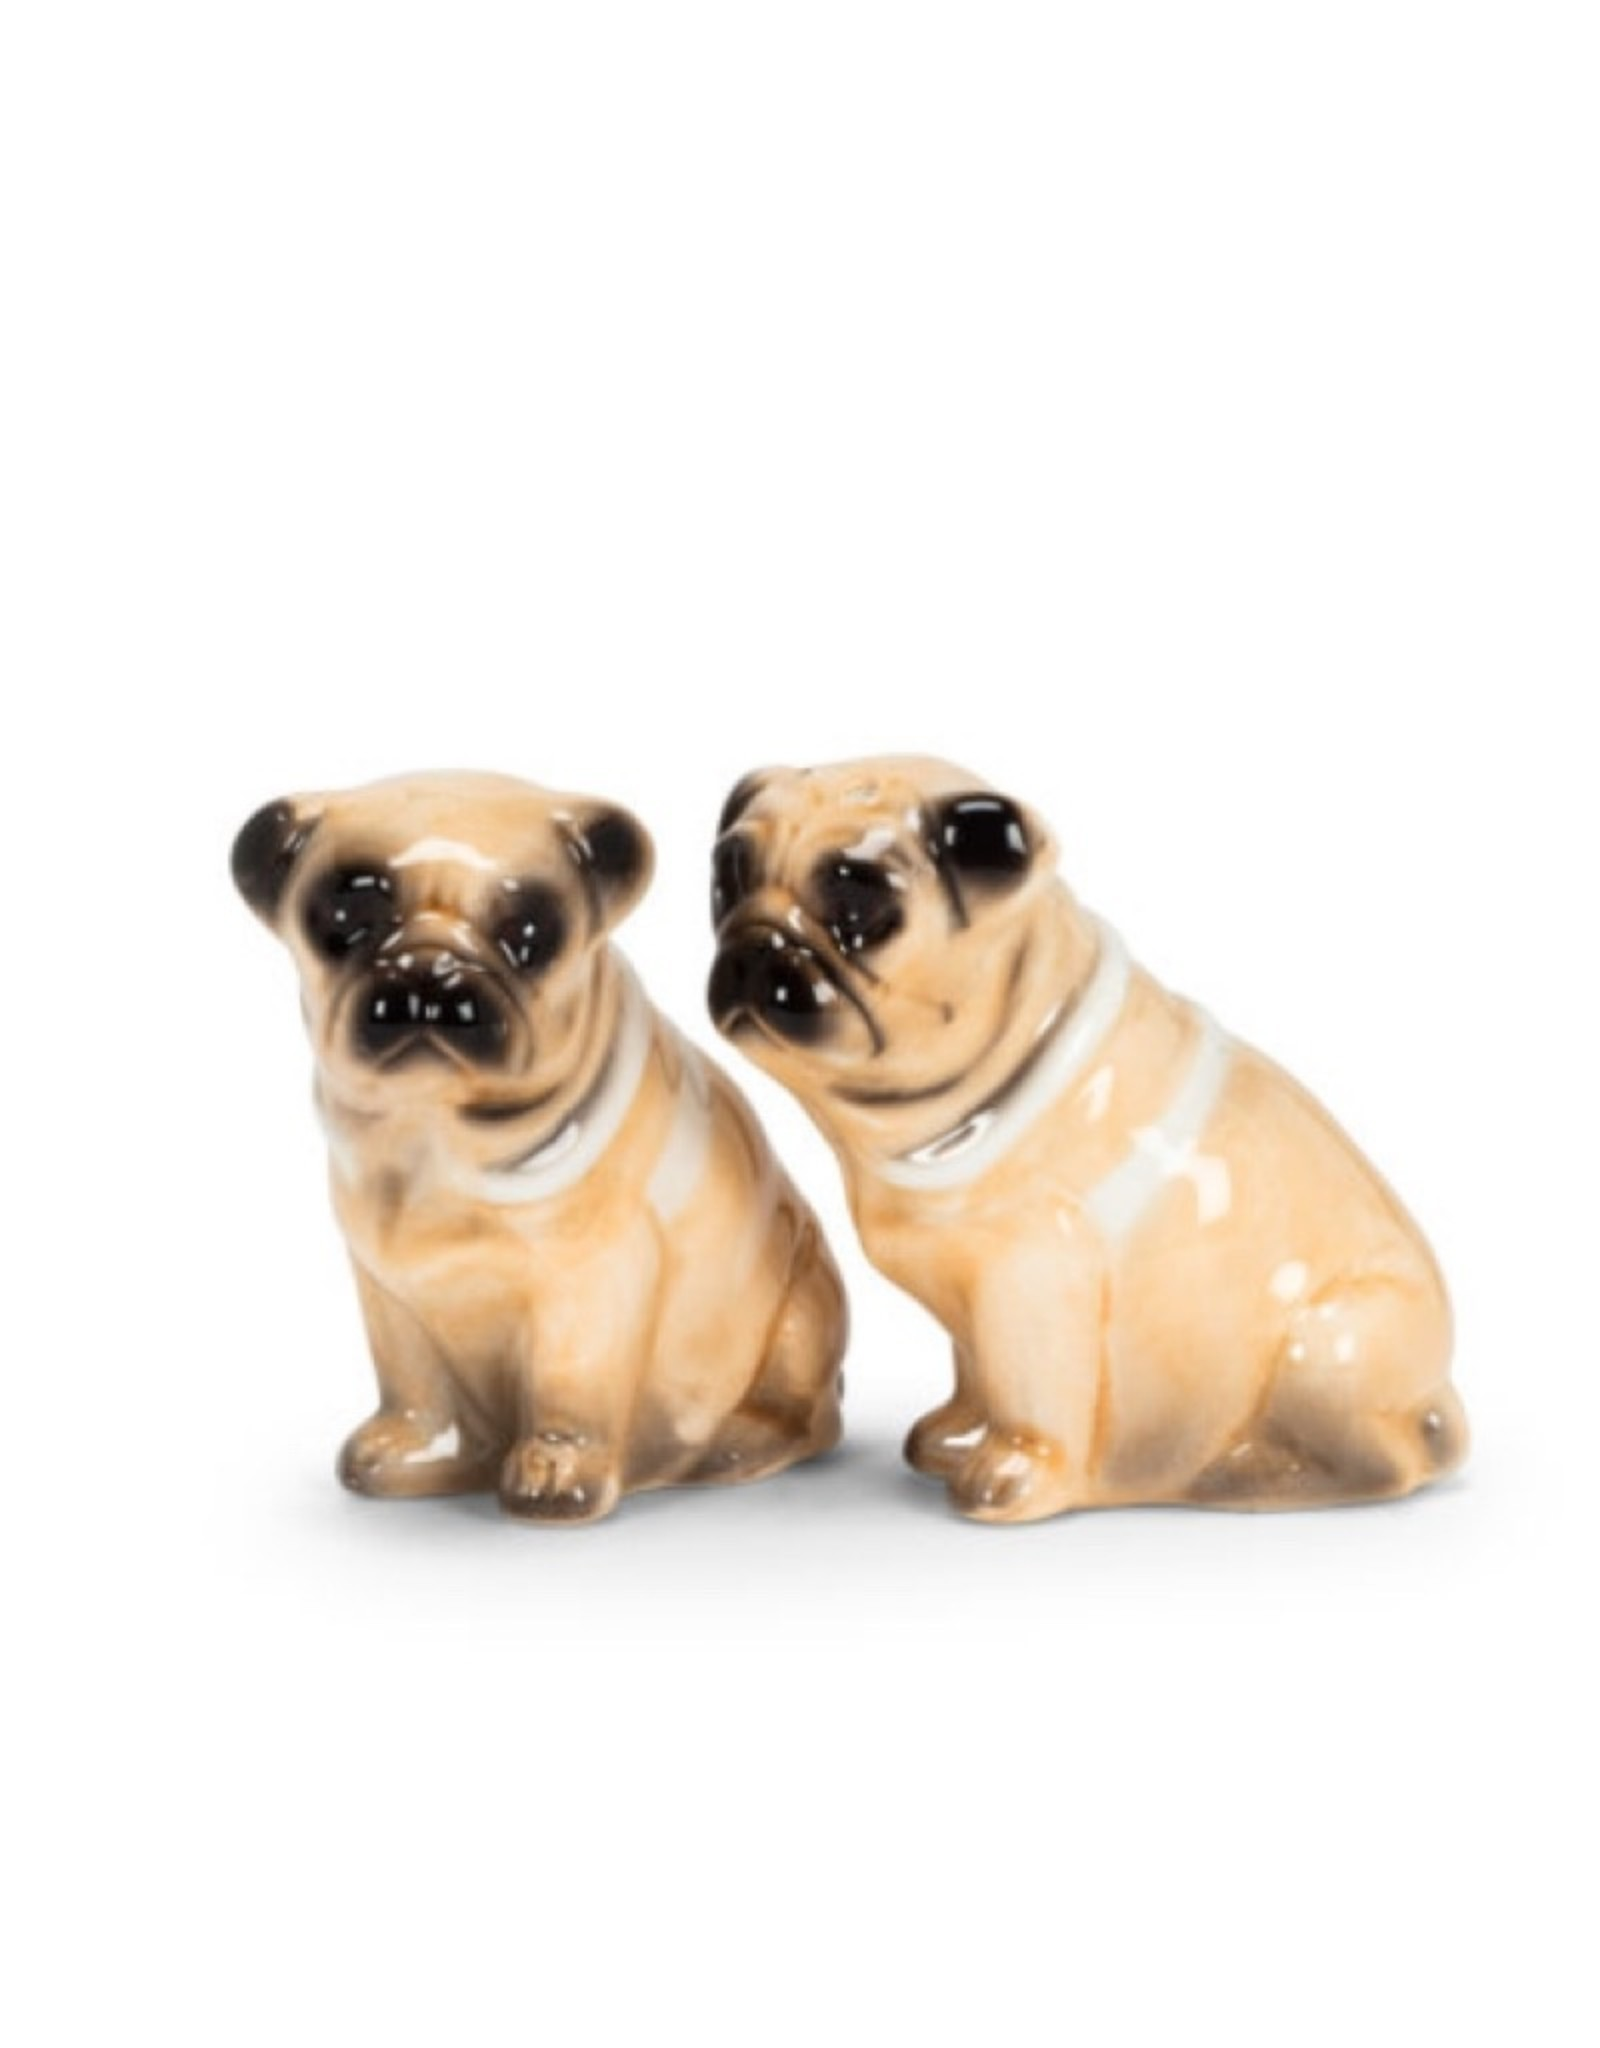 27-KITSCH-291 Pug Dog Salt & Pepper